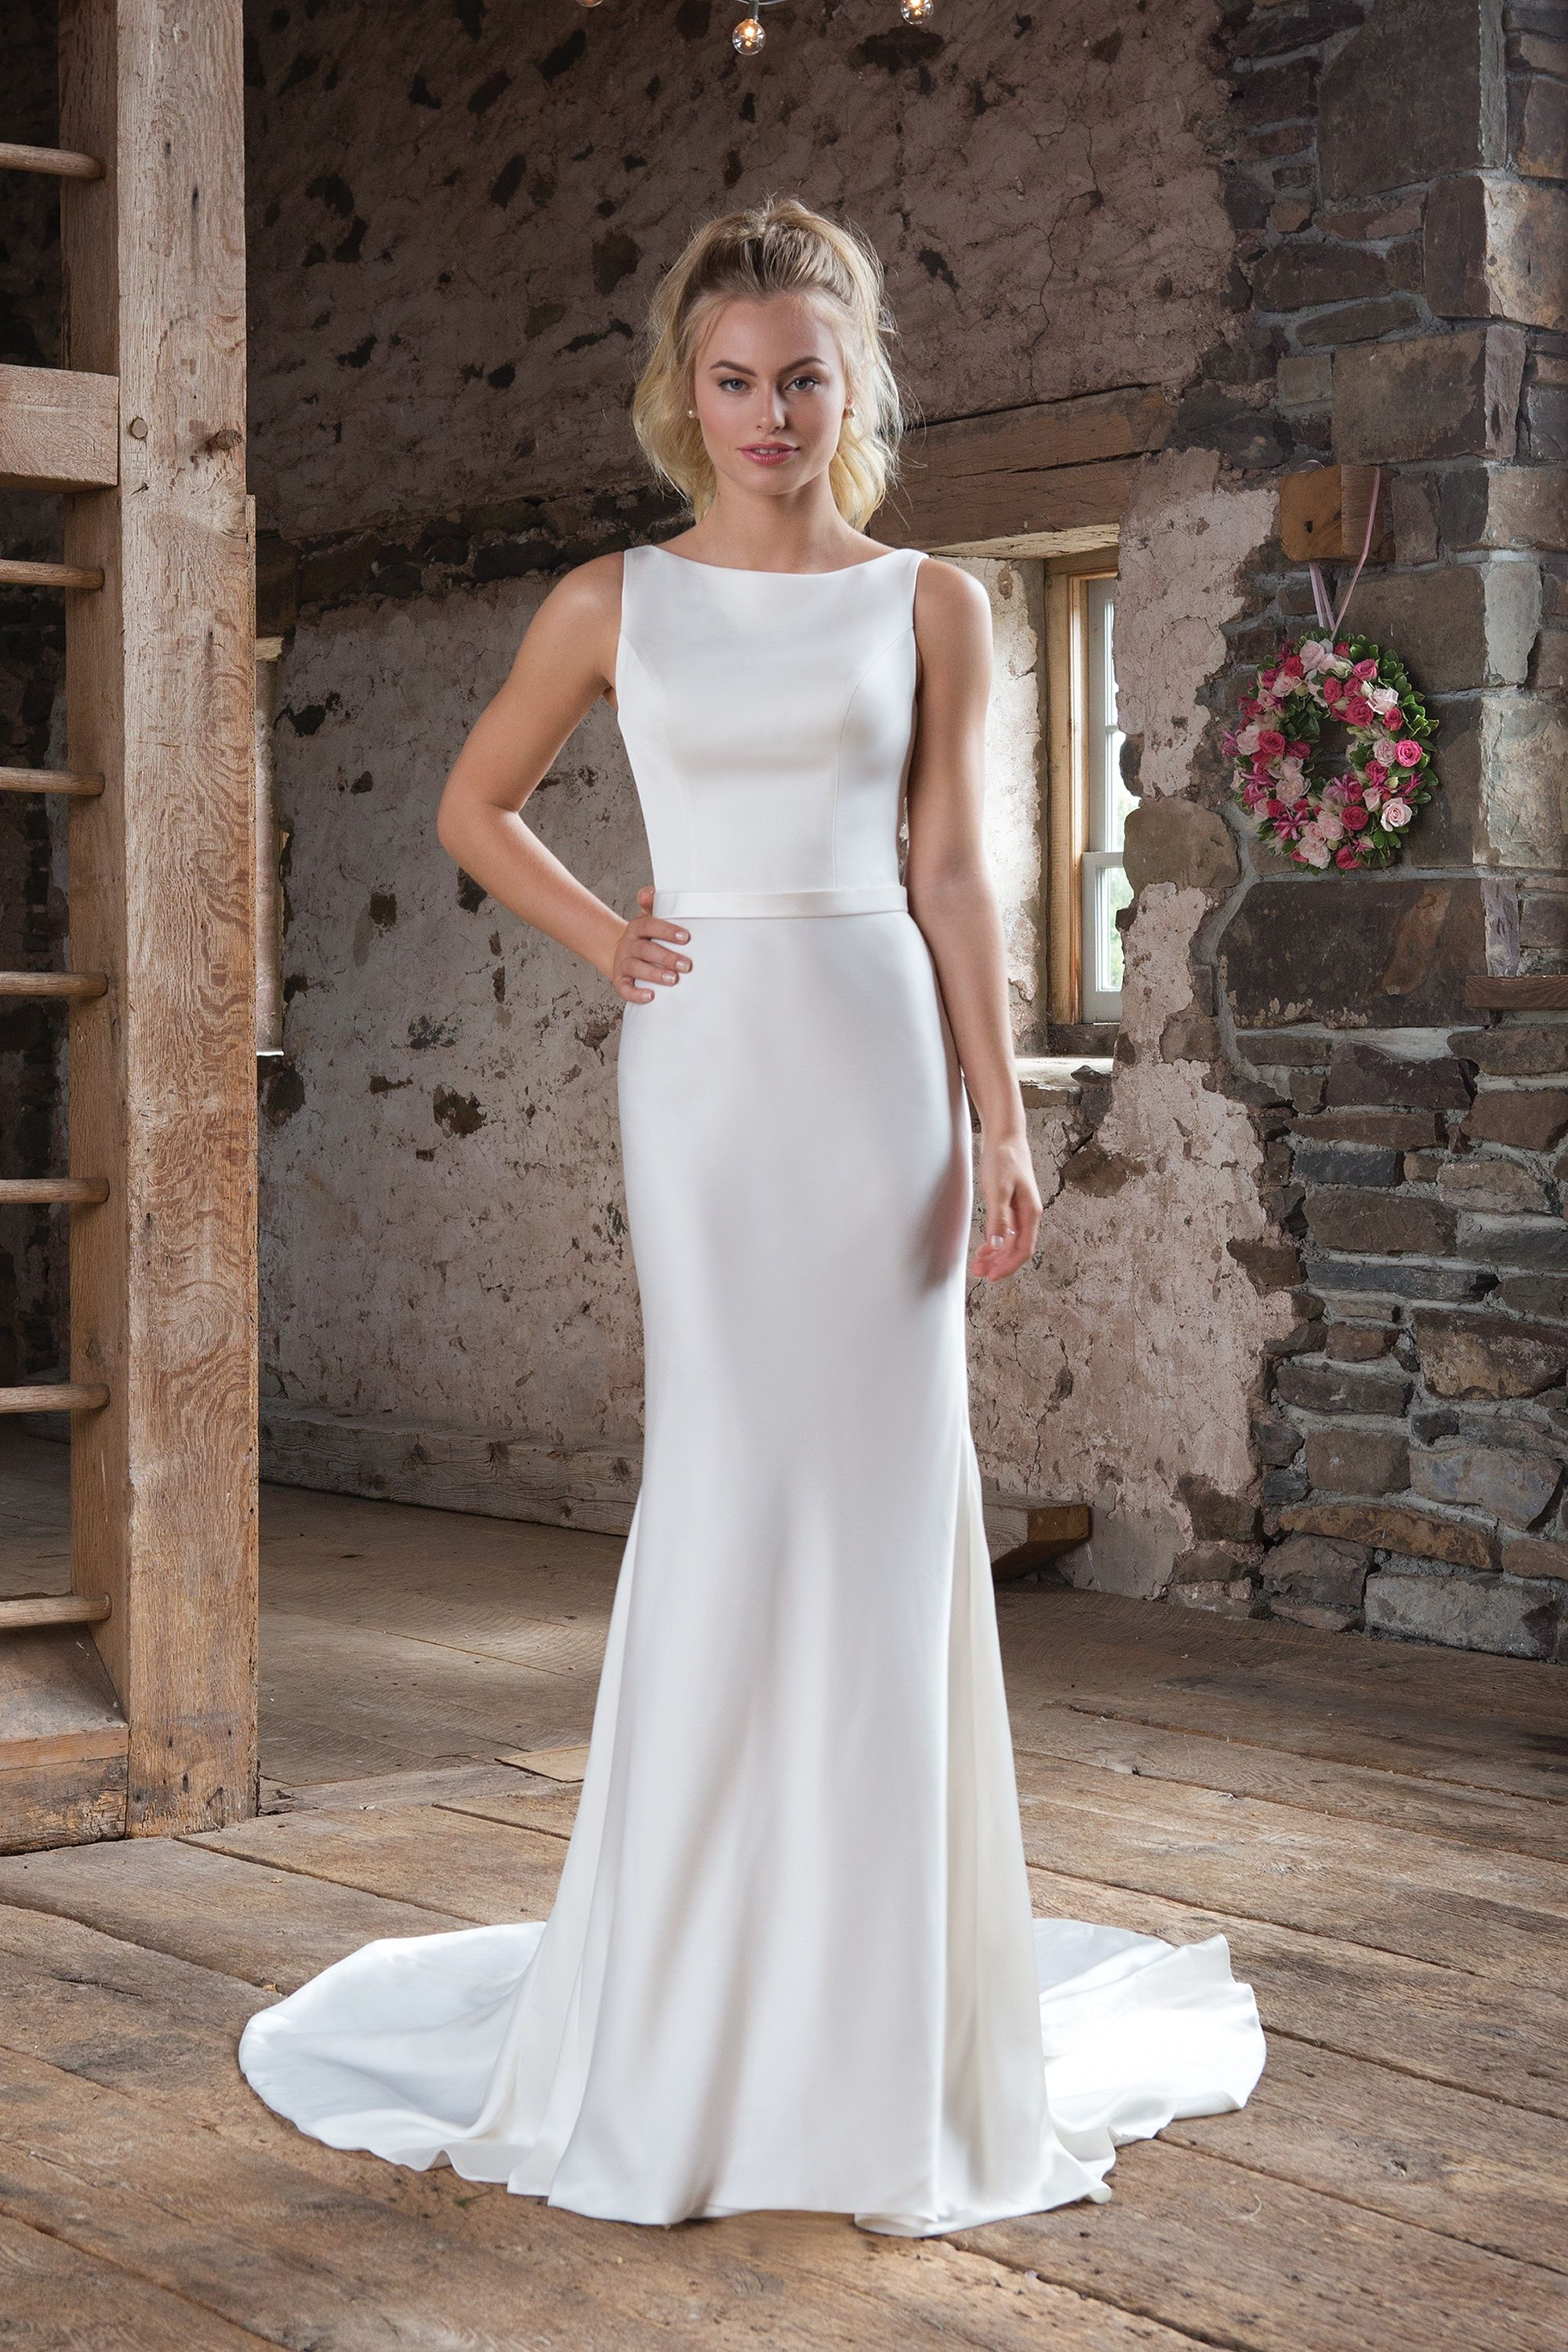 Style 1104 HighNeck Satin Dress with Lace Square Back